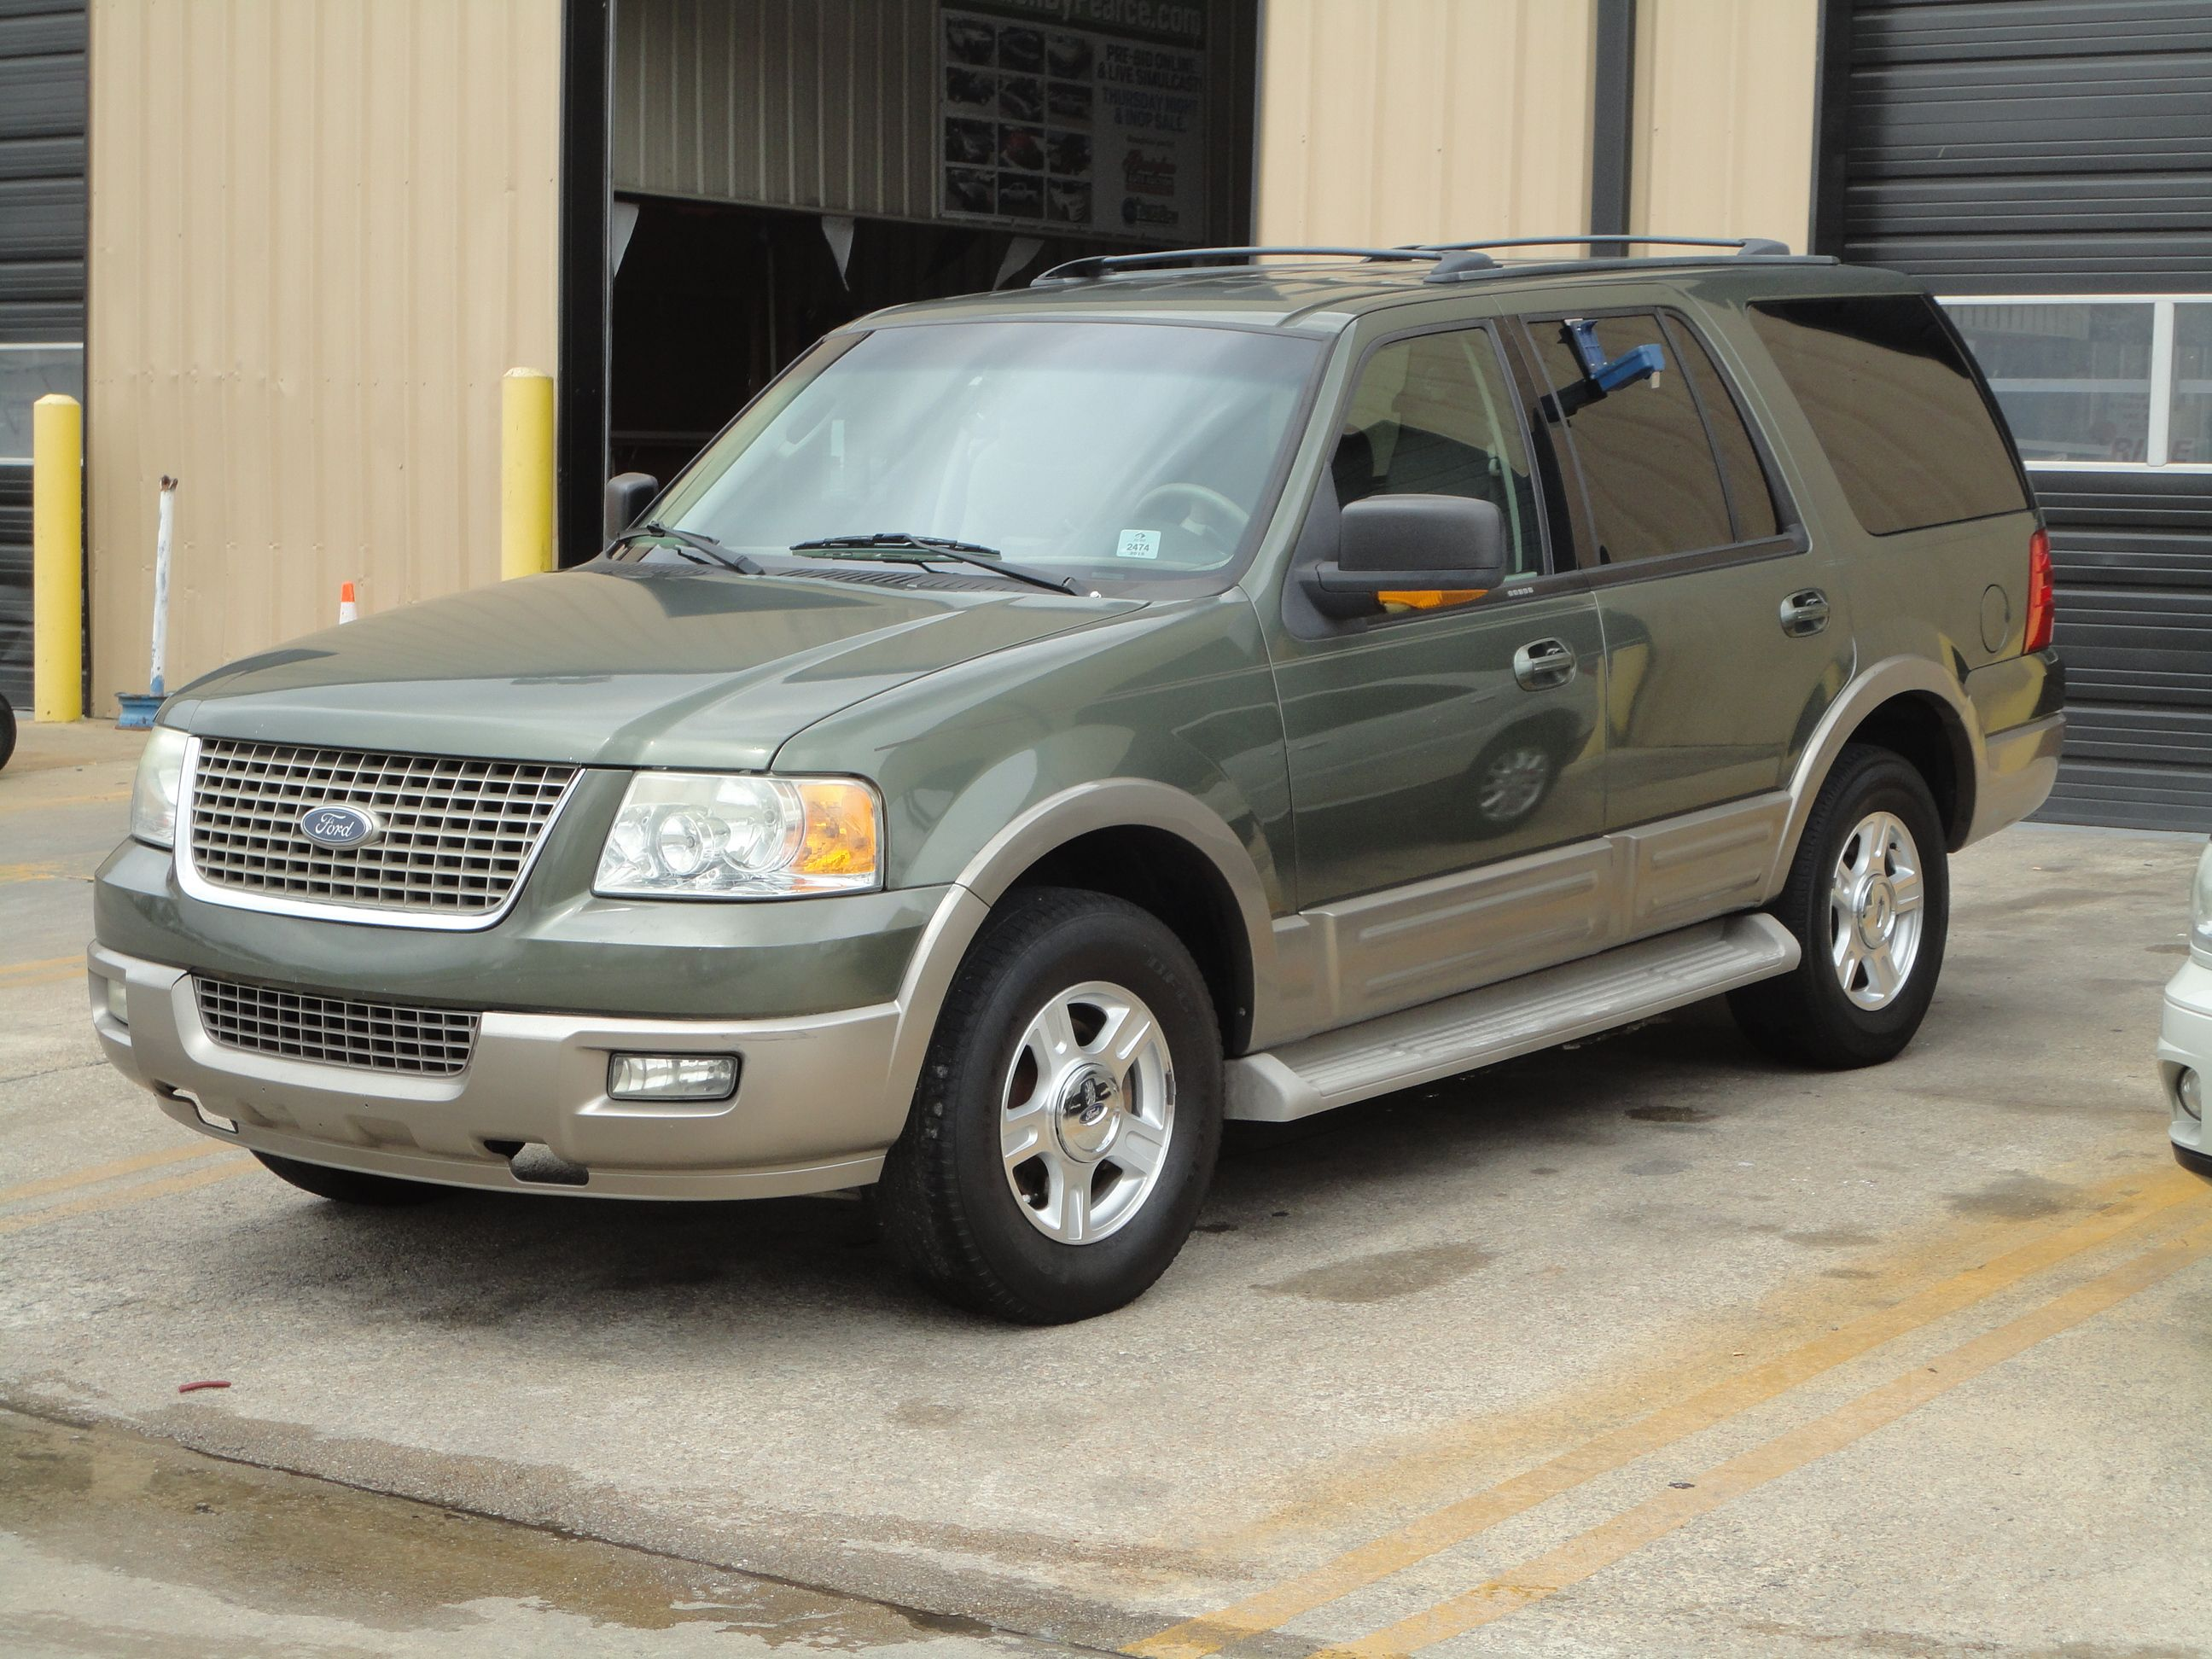 2004 Ford Expedition Ed Bauer Edition vehicle